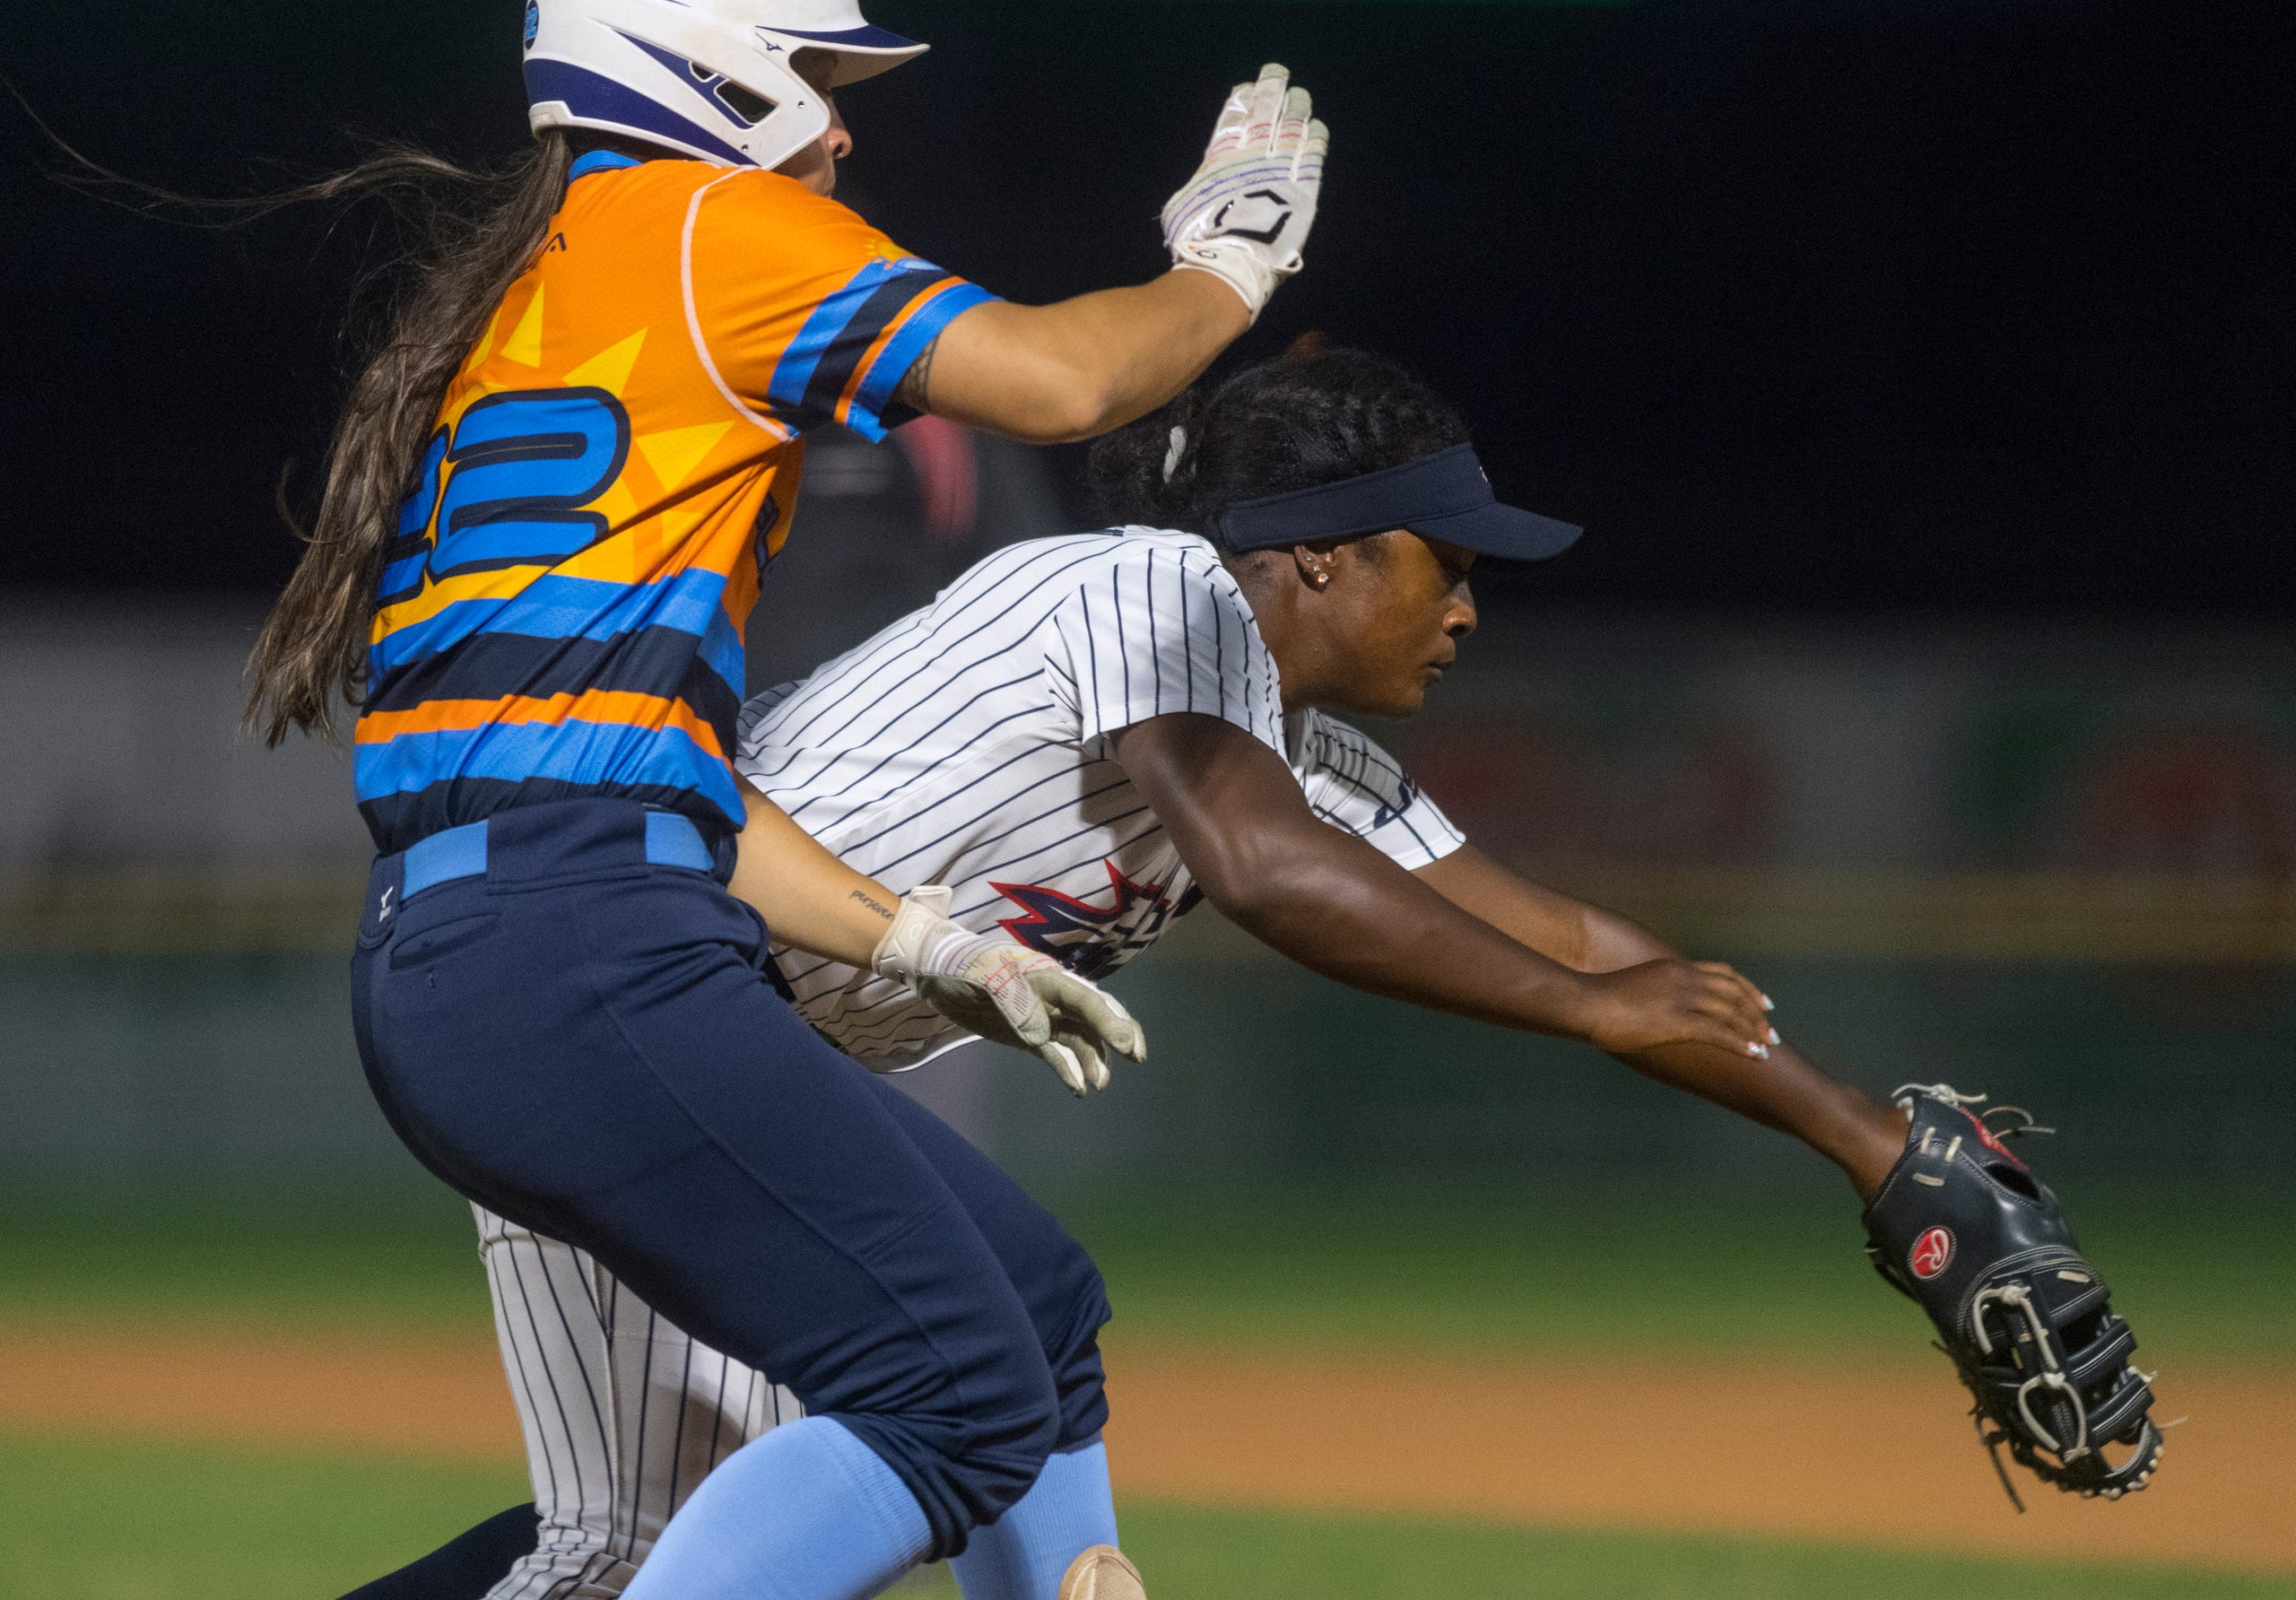 USSSA Pride's Shay Knighten (17) outs Team Florida's Maddi Hackbarth (22) as the USSSA Pride takes on Team Florida in an exhibition game at Bosse Field in Evansville, Ind., Wednesday evening, July 14, 2021.